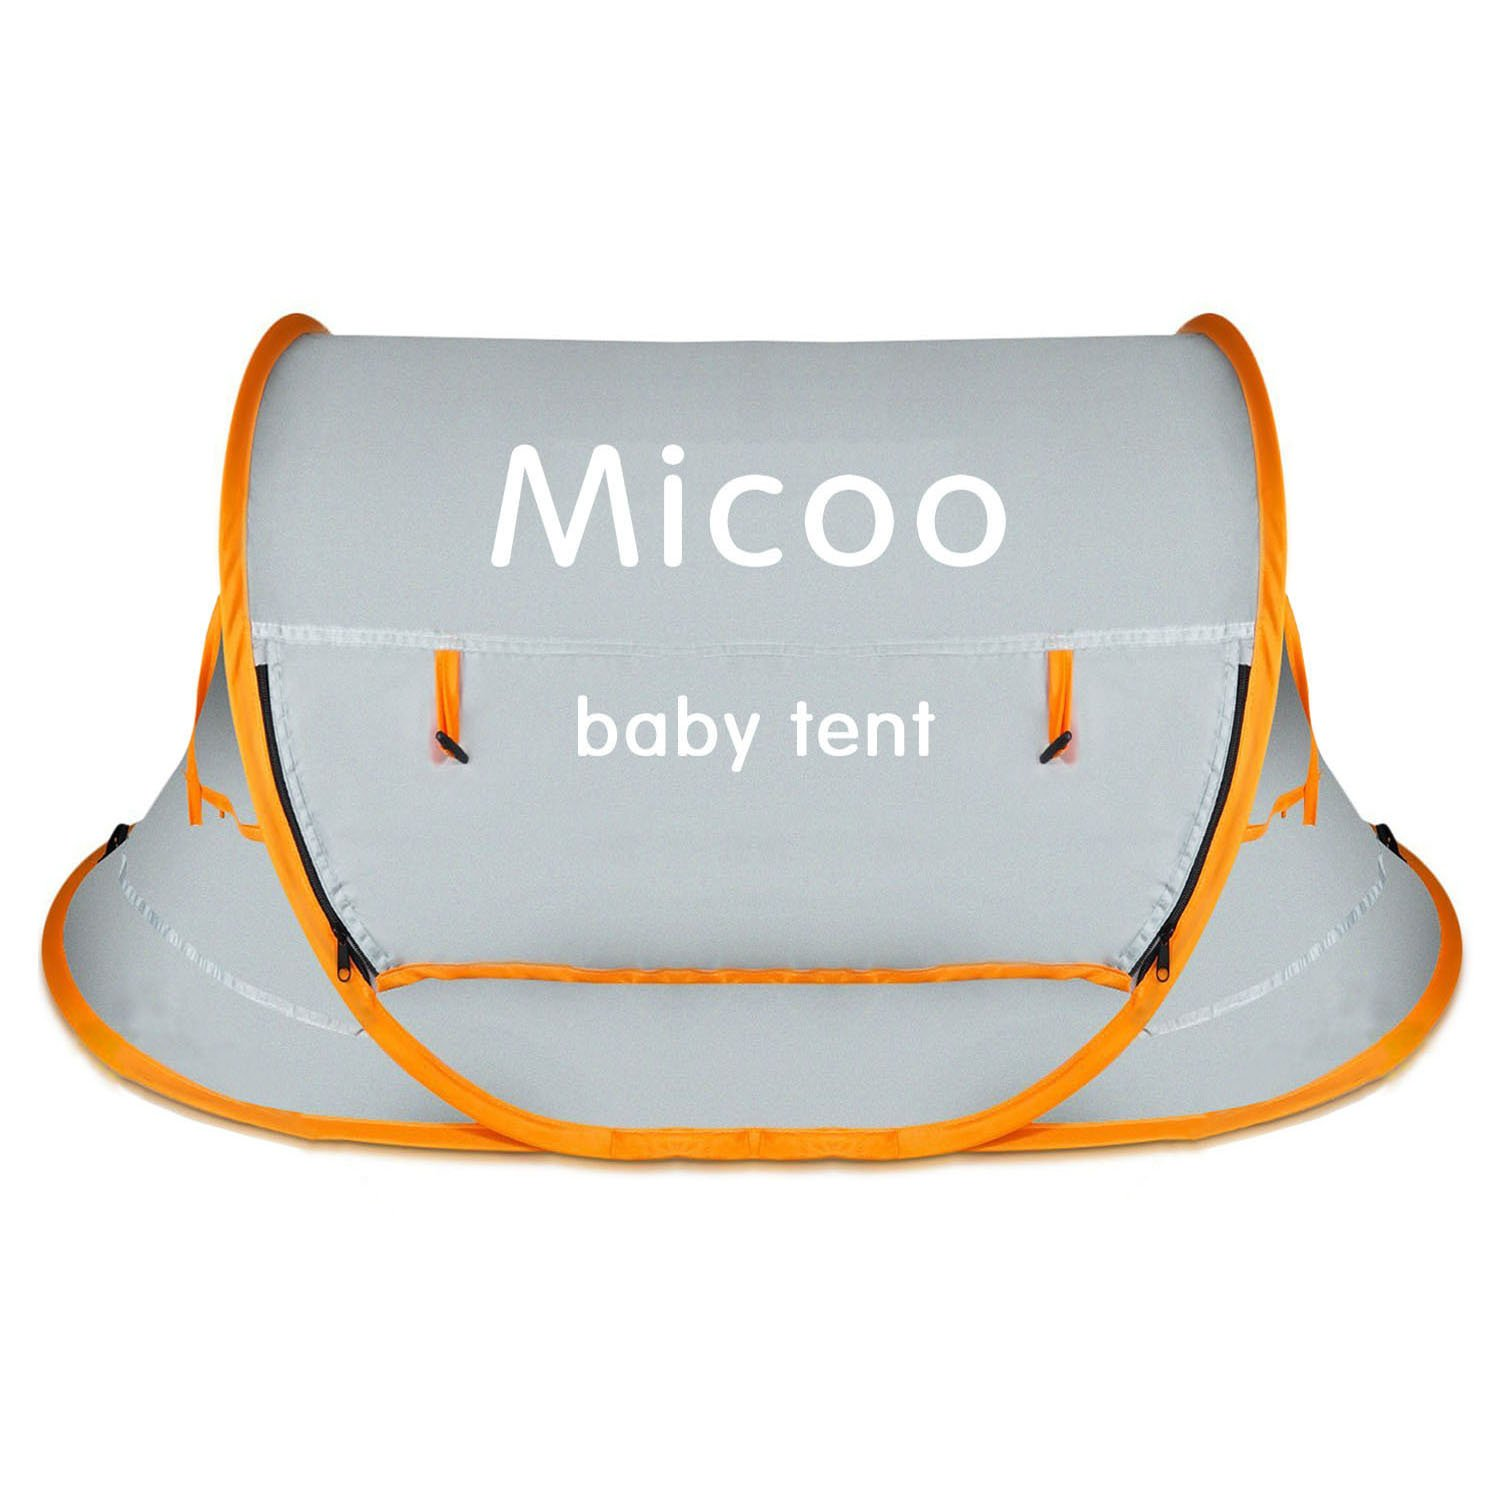 Micoo Baby Travel Tent, Portable Beach Tent UPF 50+ Sun Travel Pop up Folding Cribs Tent Mosquito Net Infant Beach Gear UV Protection with 2 Pegs